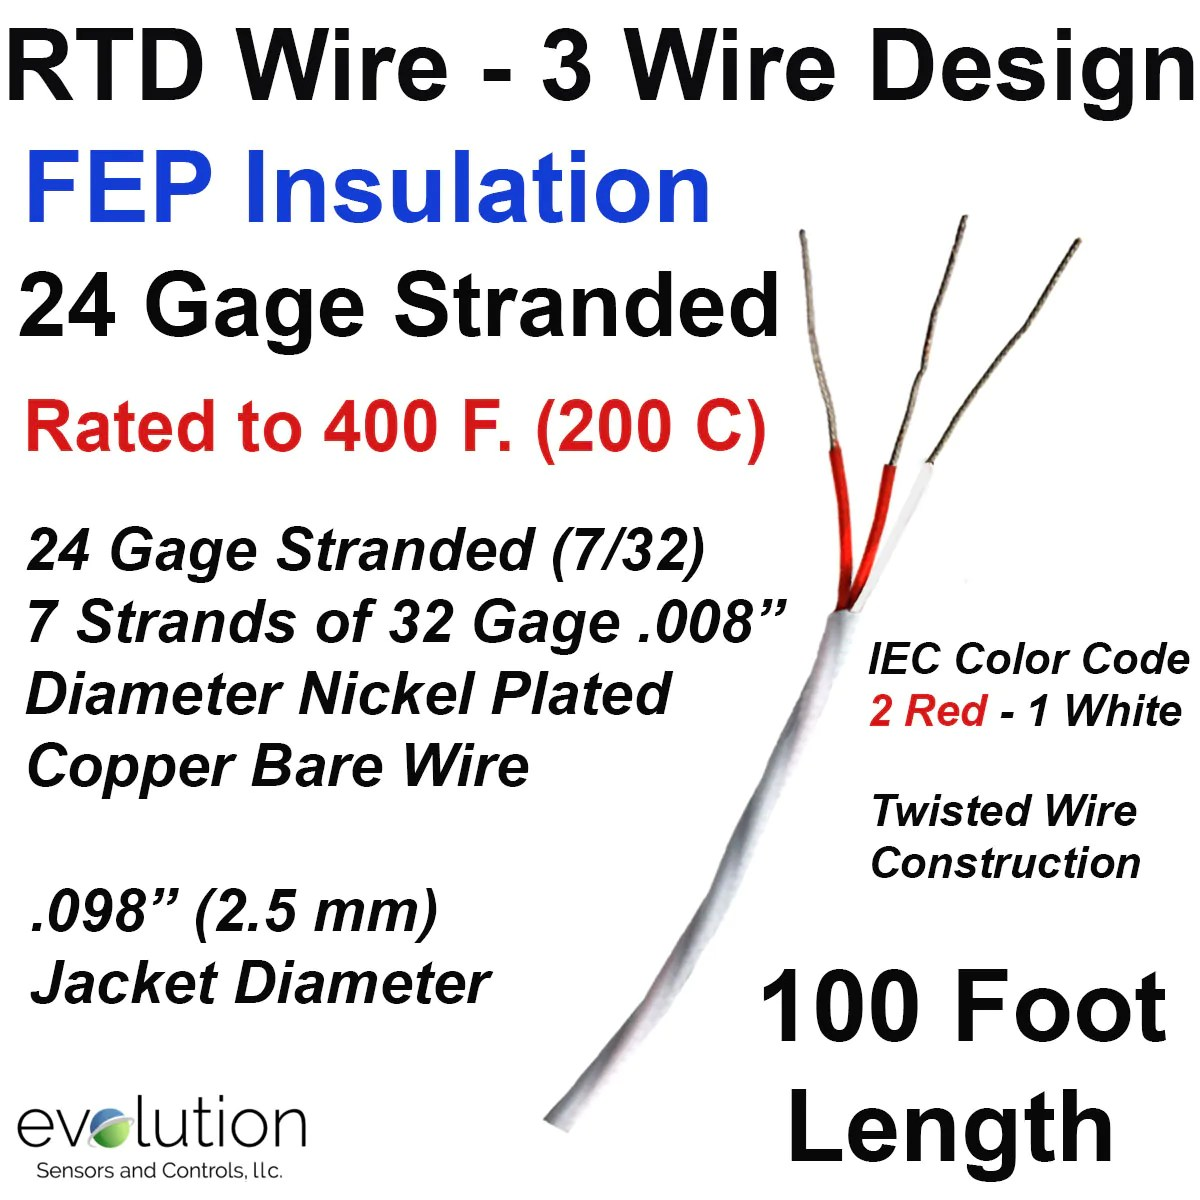 rtd wire 3 wire design 24 gage stranded with fep insulation 100 2 wire rtd color [ 1200 x 1200 Pixel ]